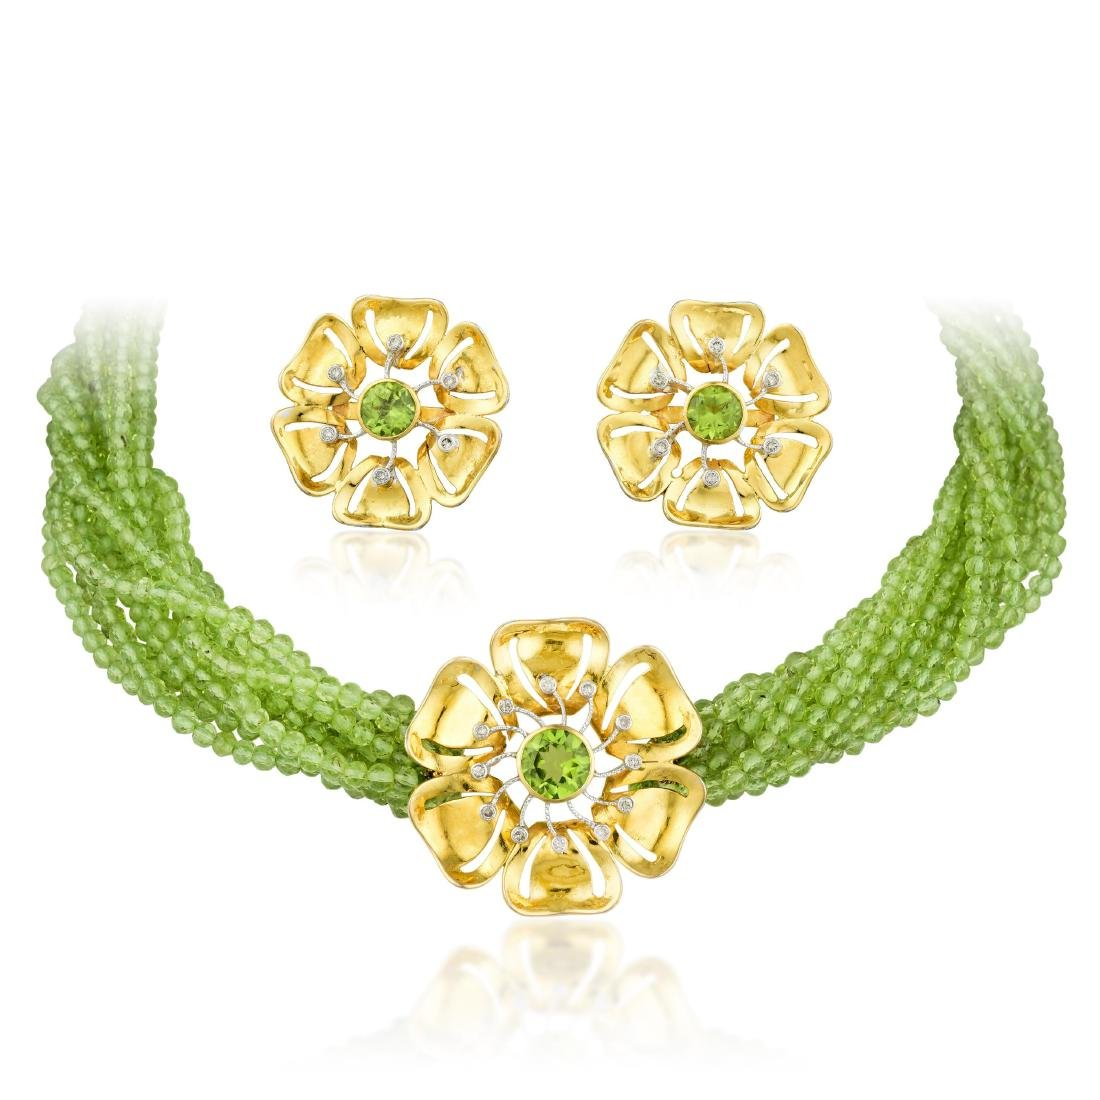 A Peridot Necklace and Earrings Set